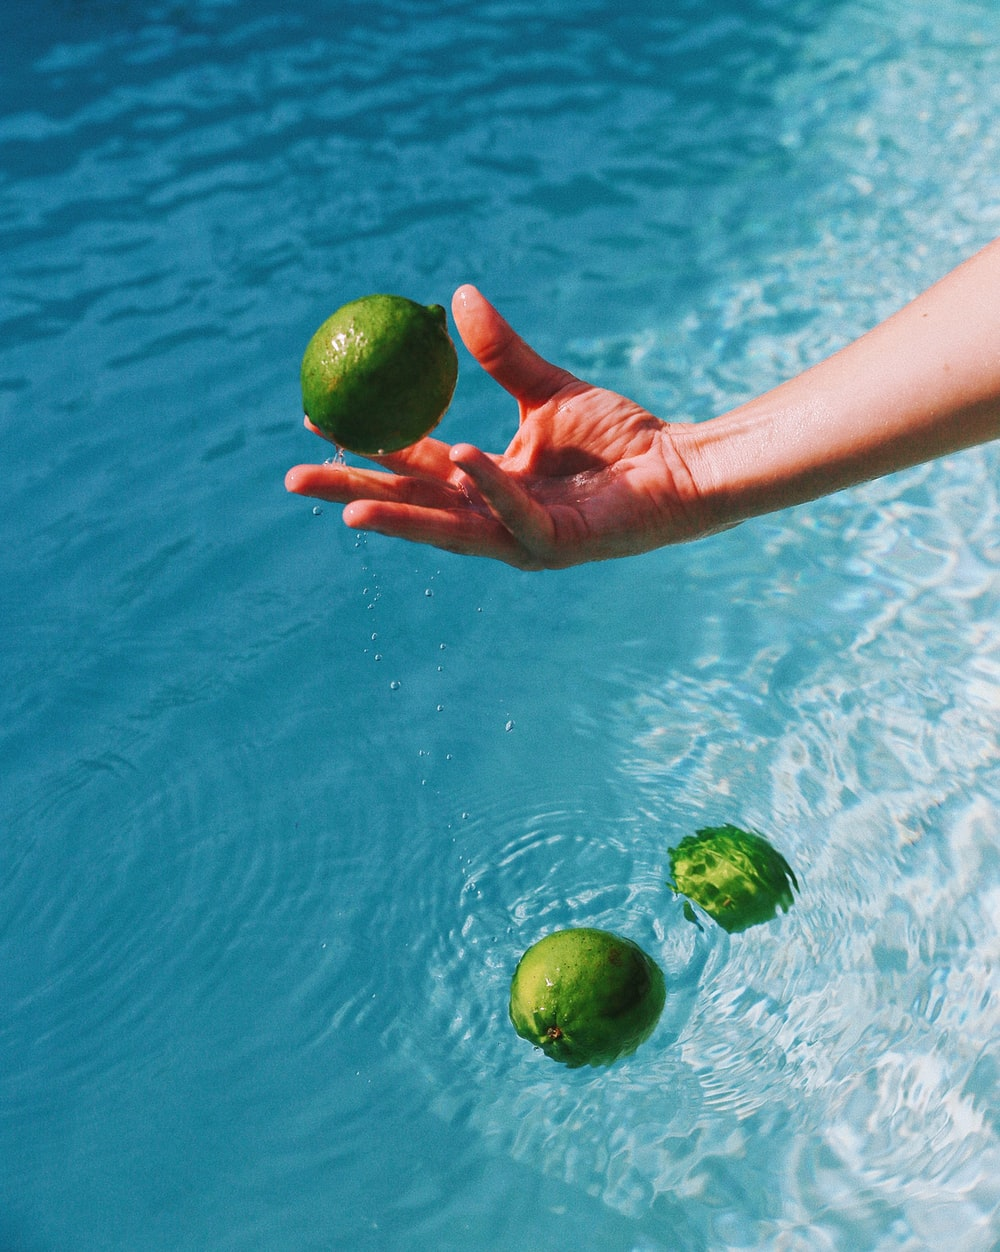 person holding green round fruit